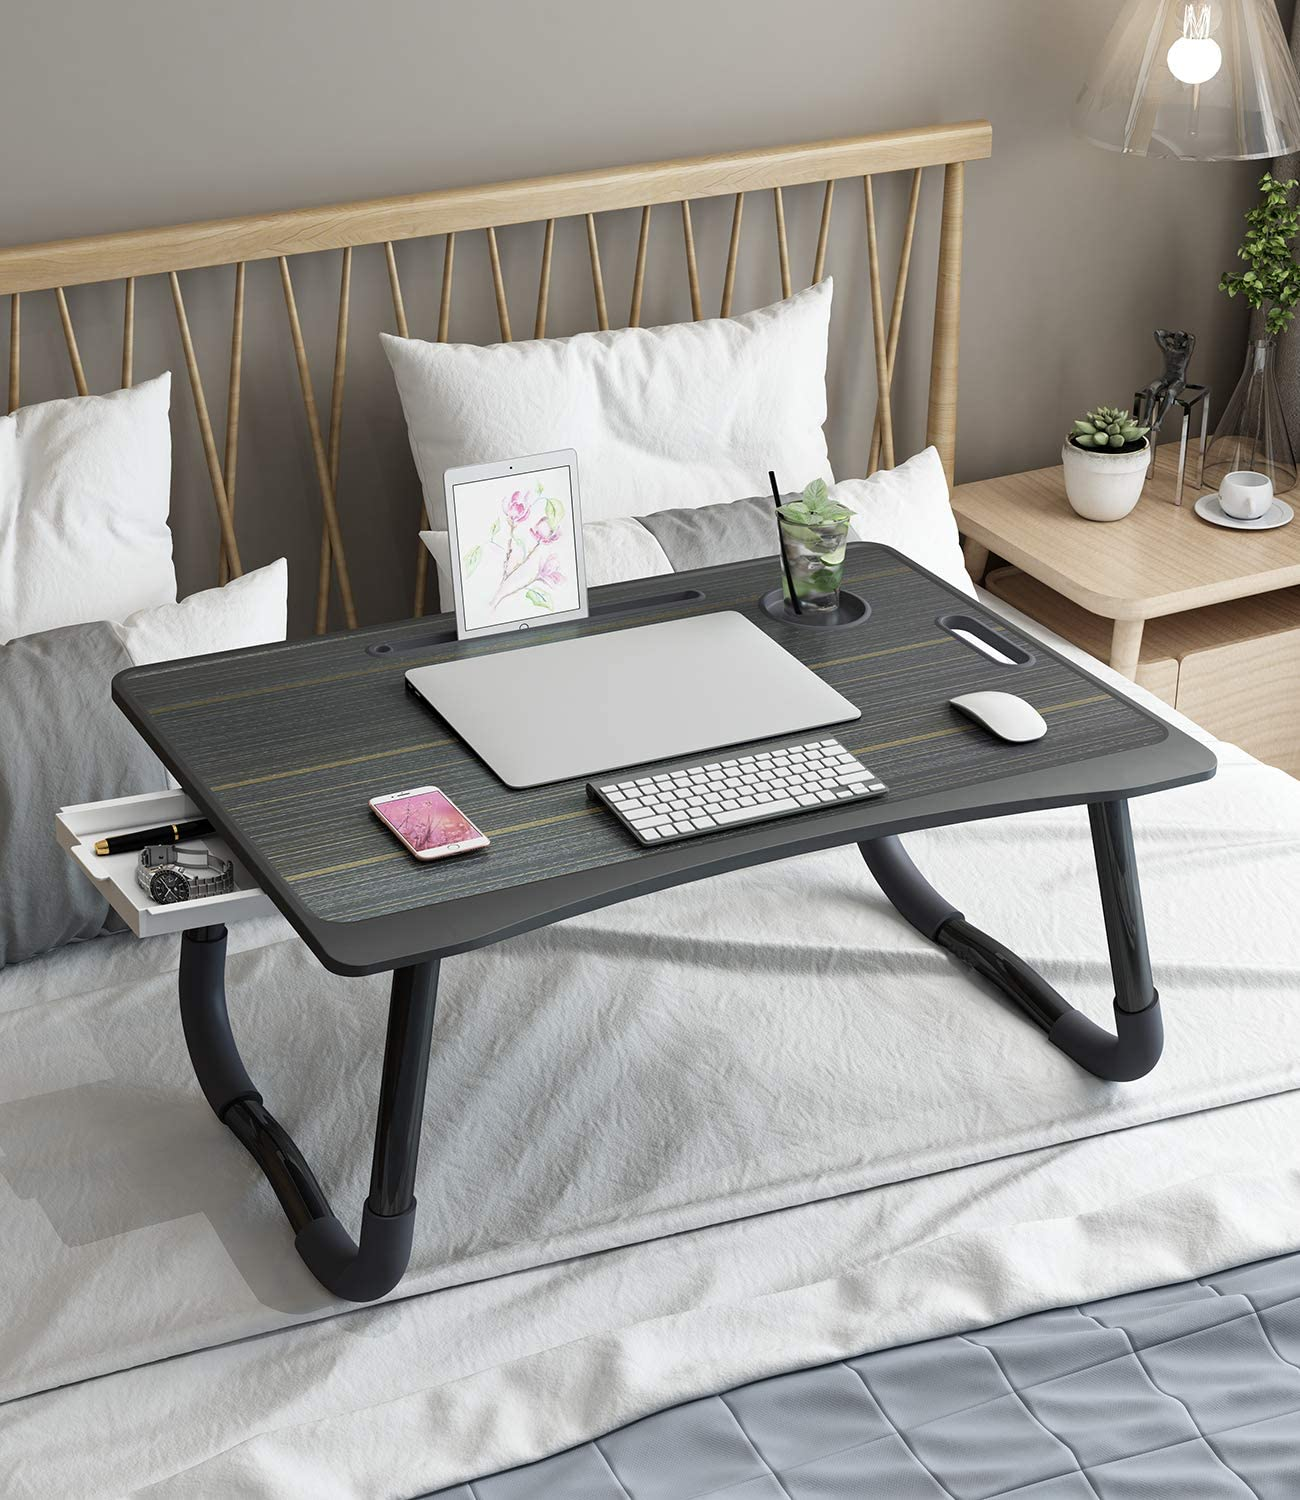 Laptop Desk - Larger Size Bed Desk for Writing and Laptop, Multi-Function Laptop Table with Storage Drawer, Bed Tray for Eating Breakfast, Working, Watching Movie on Couch/Sofa/Floor